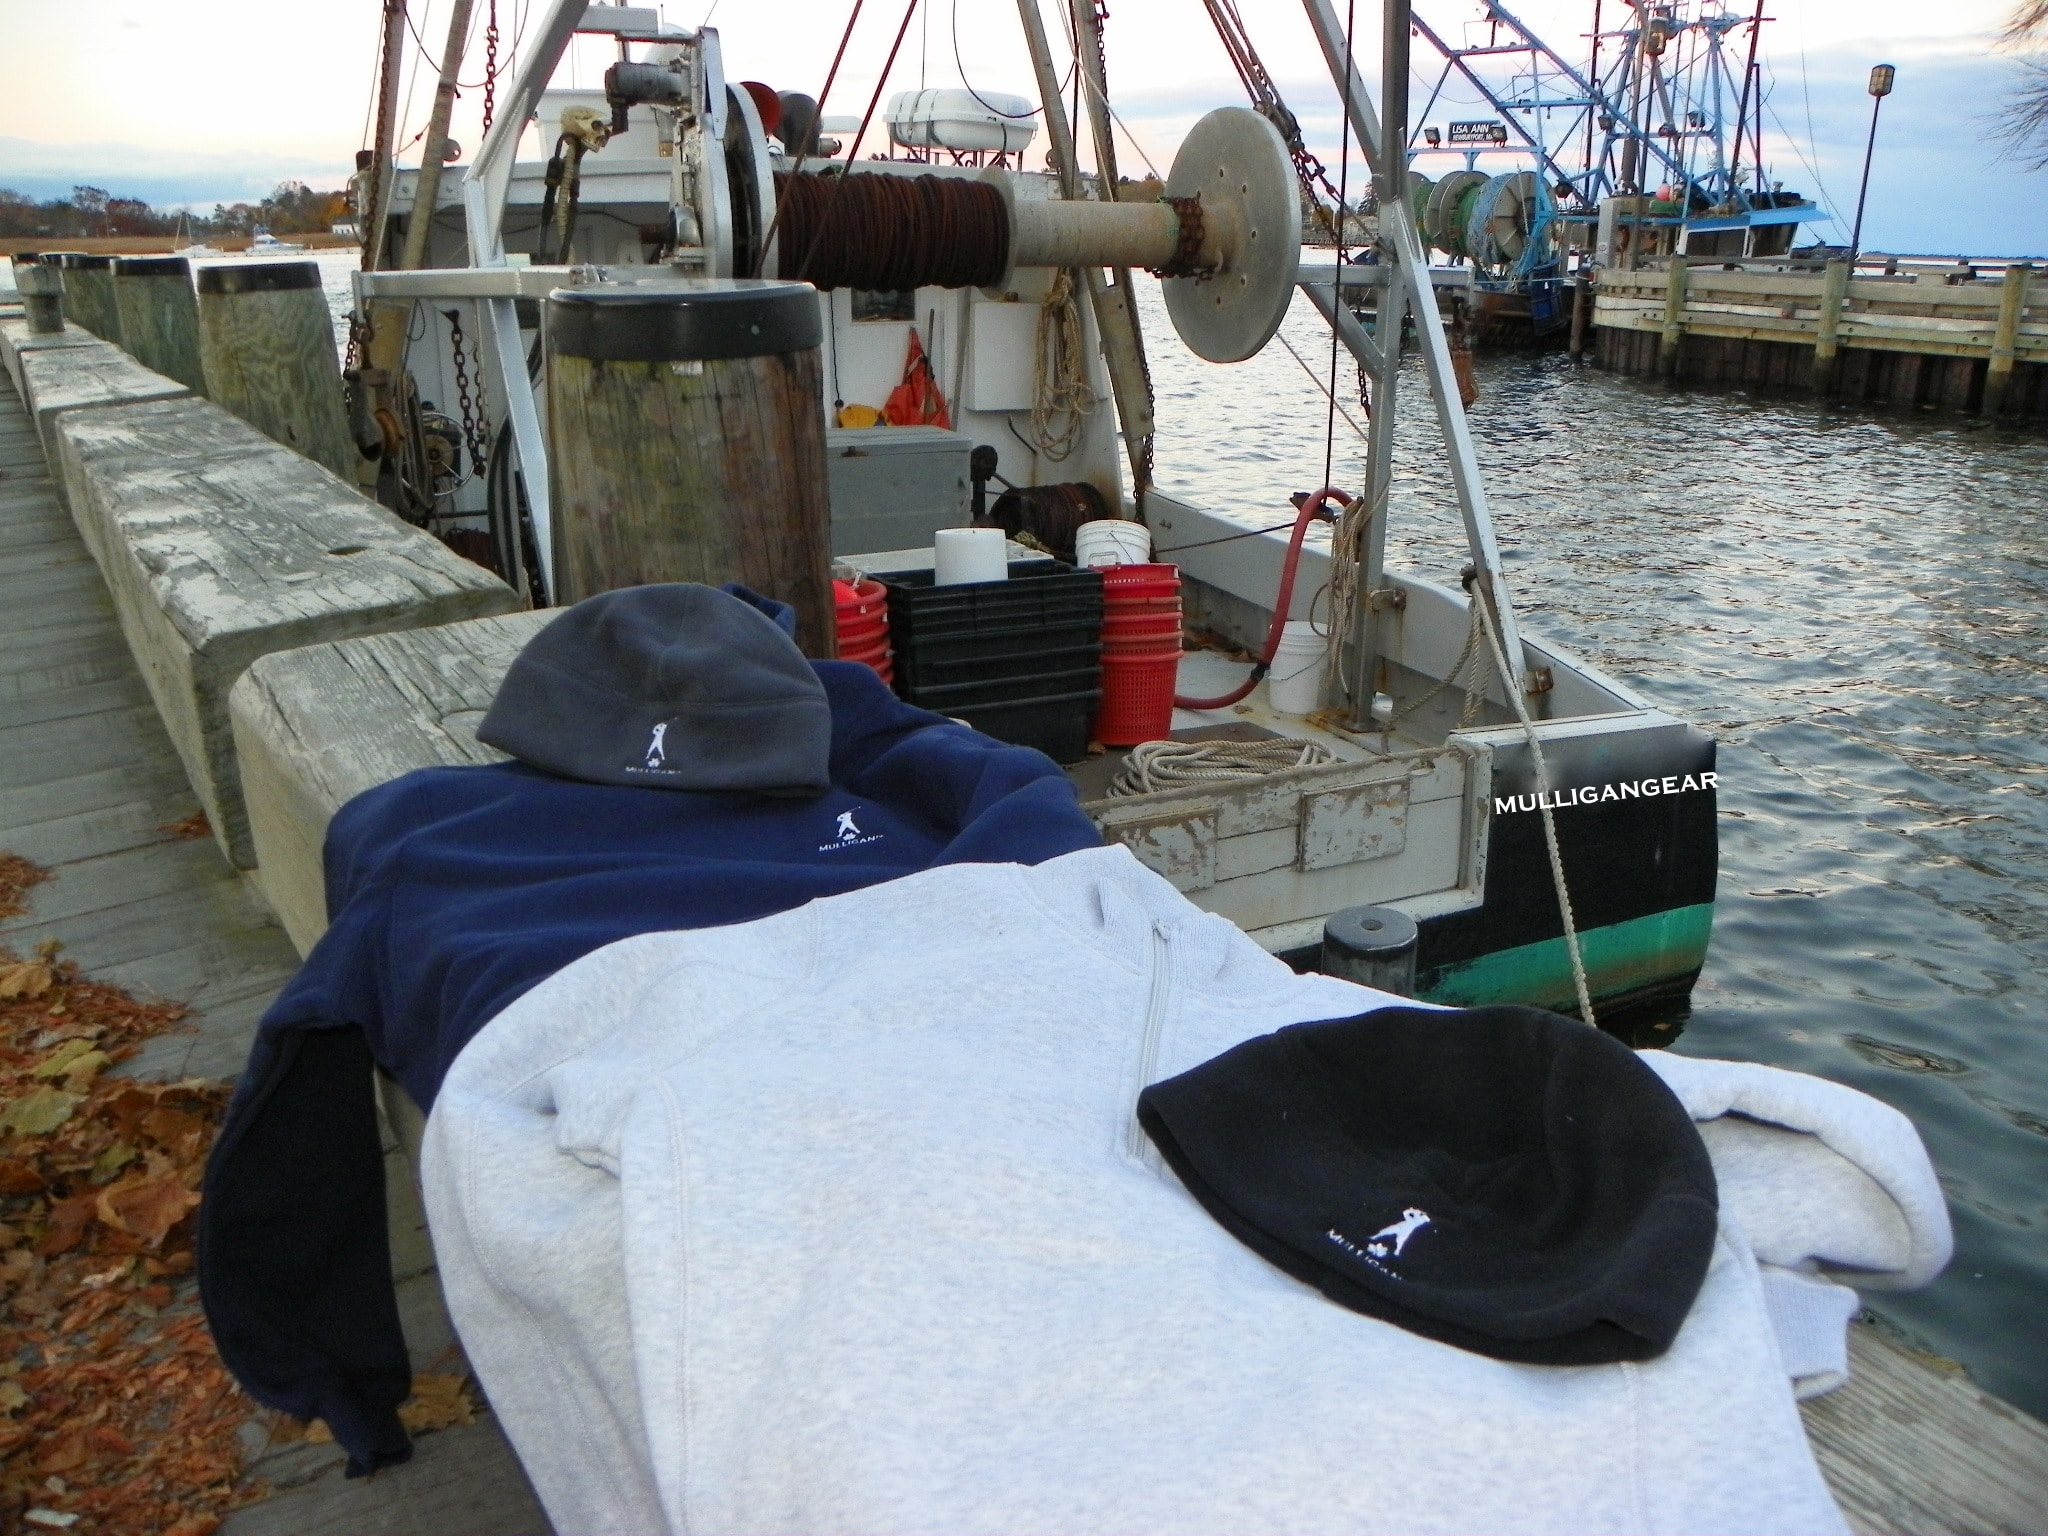 Mulligangear boat with winter wear NOV 2013